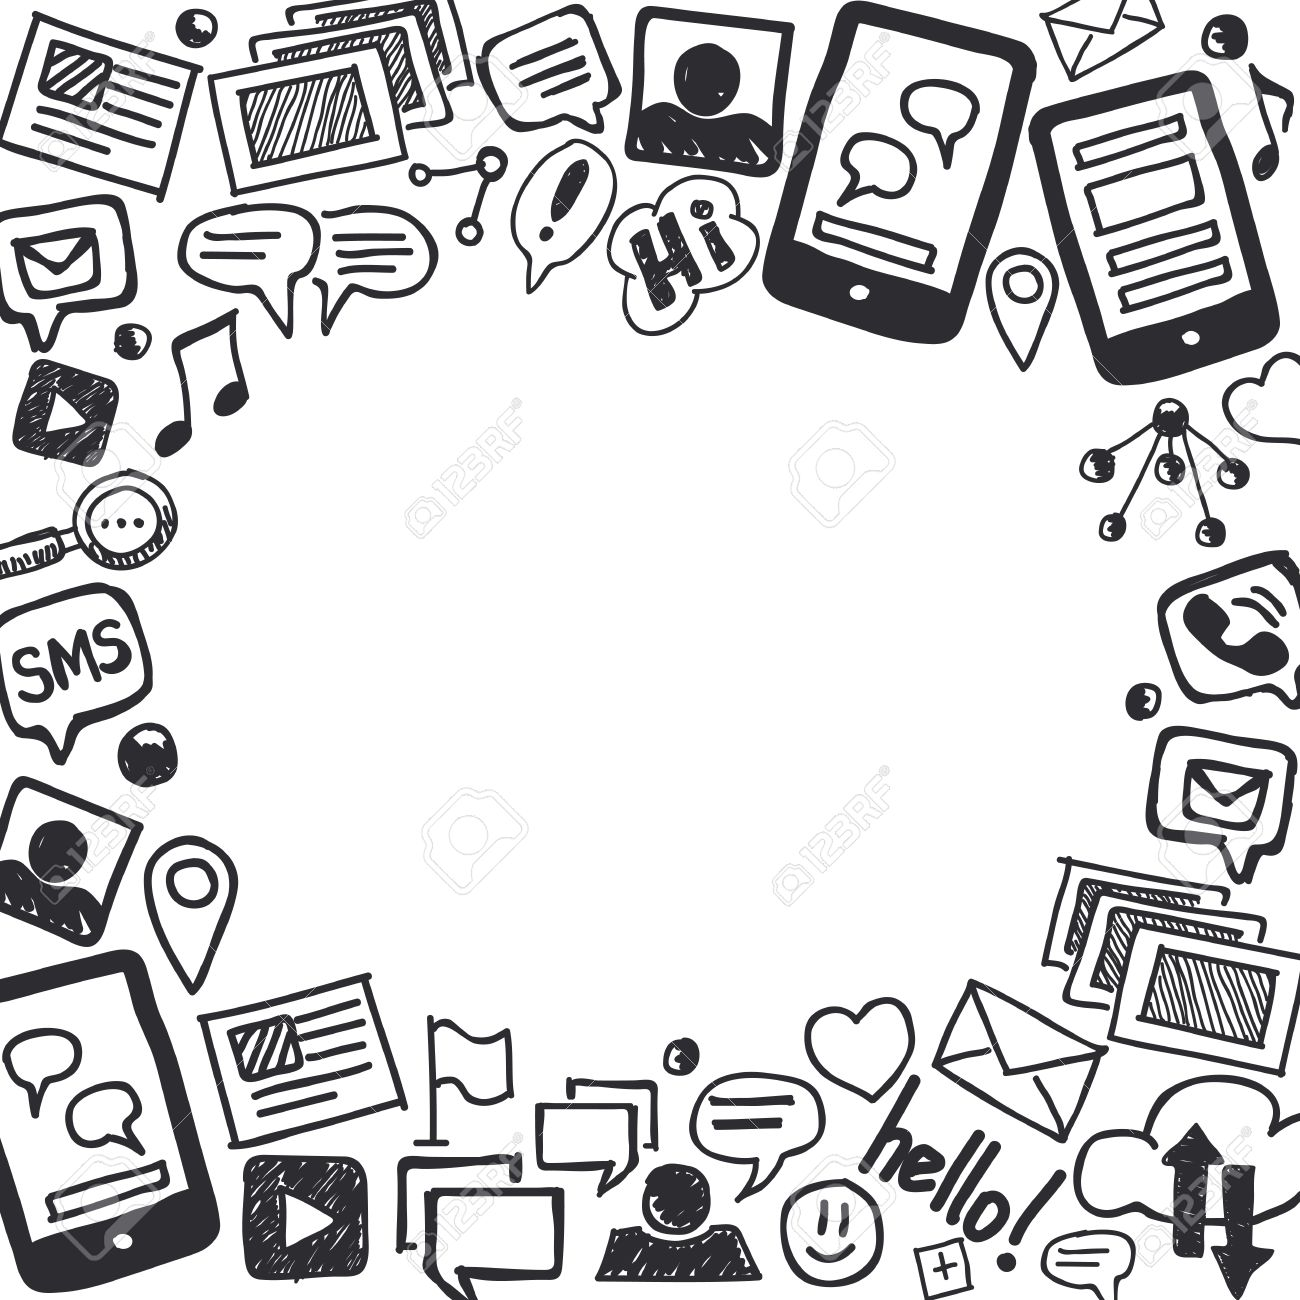 Hand Drawn Social Media Doodle Background In Black And White With Empty Space For Text